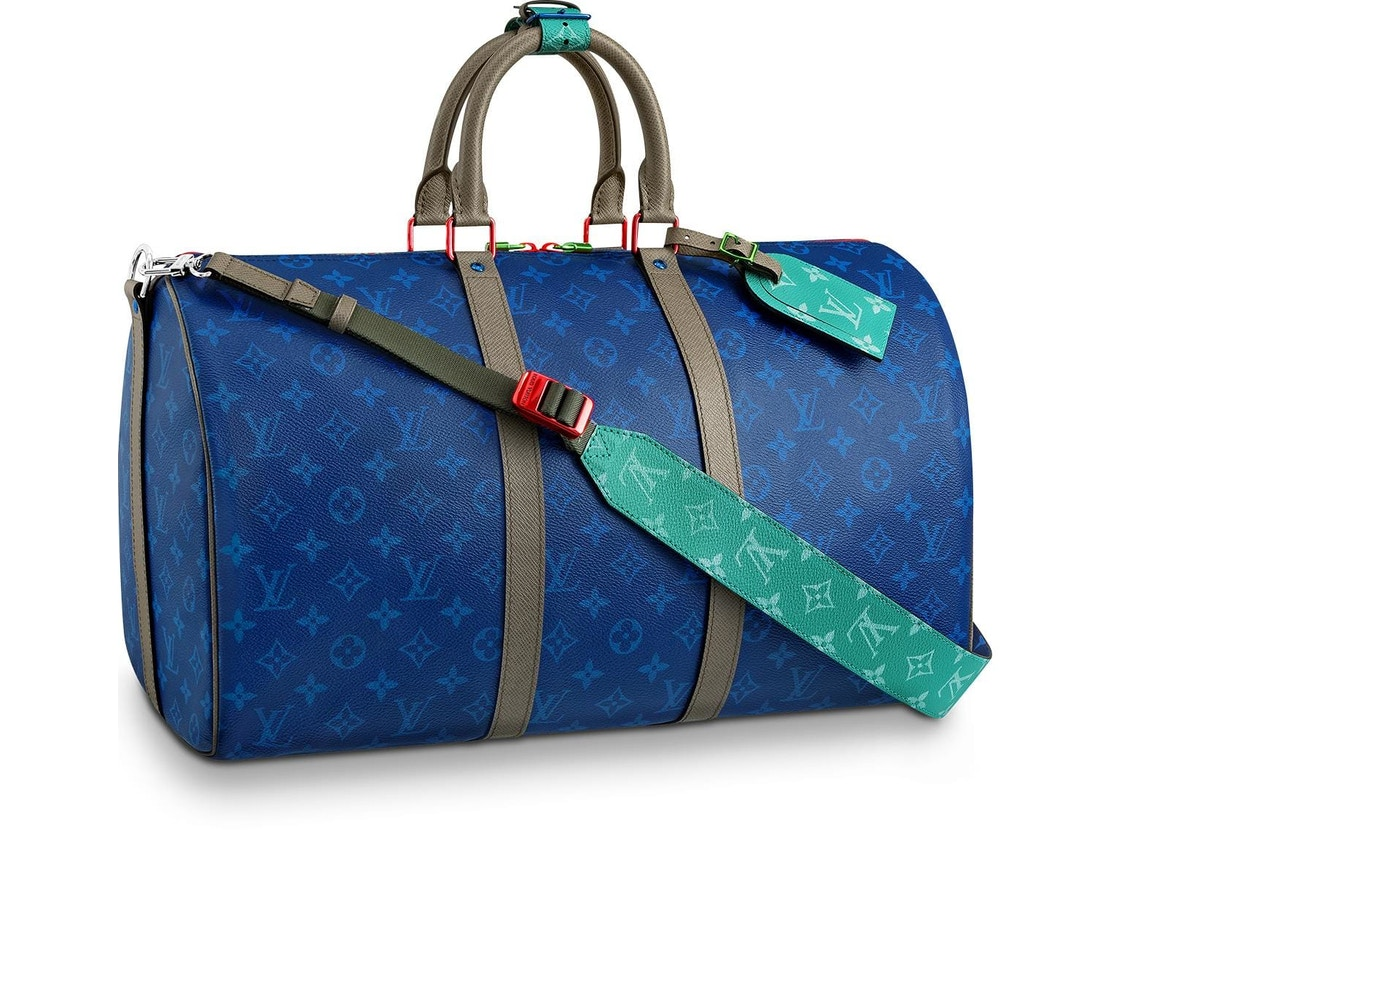 c81ca4f48746 Louis Vuitton Keepall Bandouliere Monogram Outdoor With Strap 45 Pacific  Blue. Monogram Outdoor With Strap 45 Pacific Blue